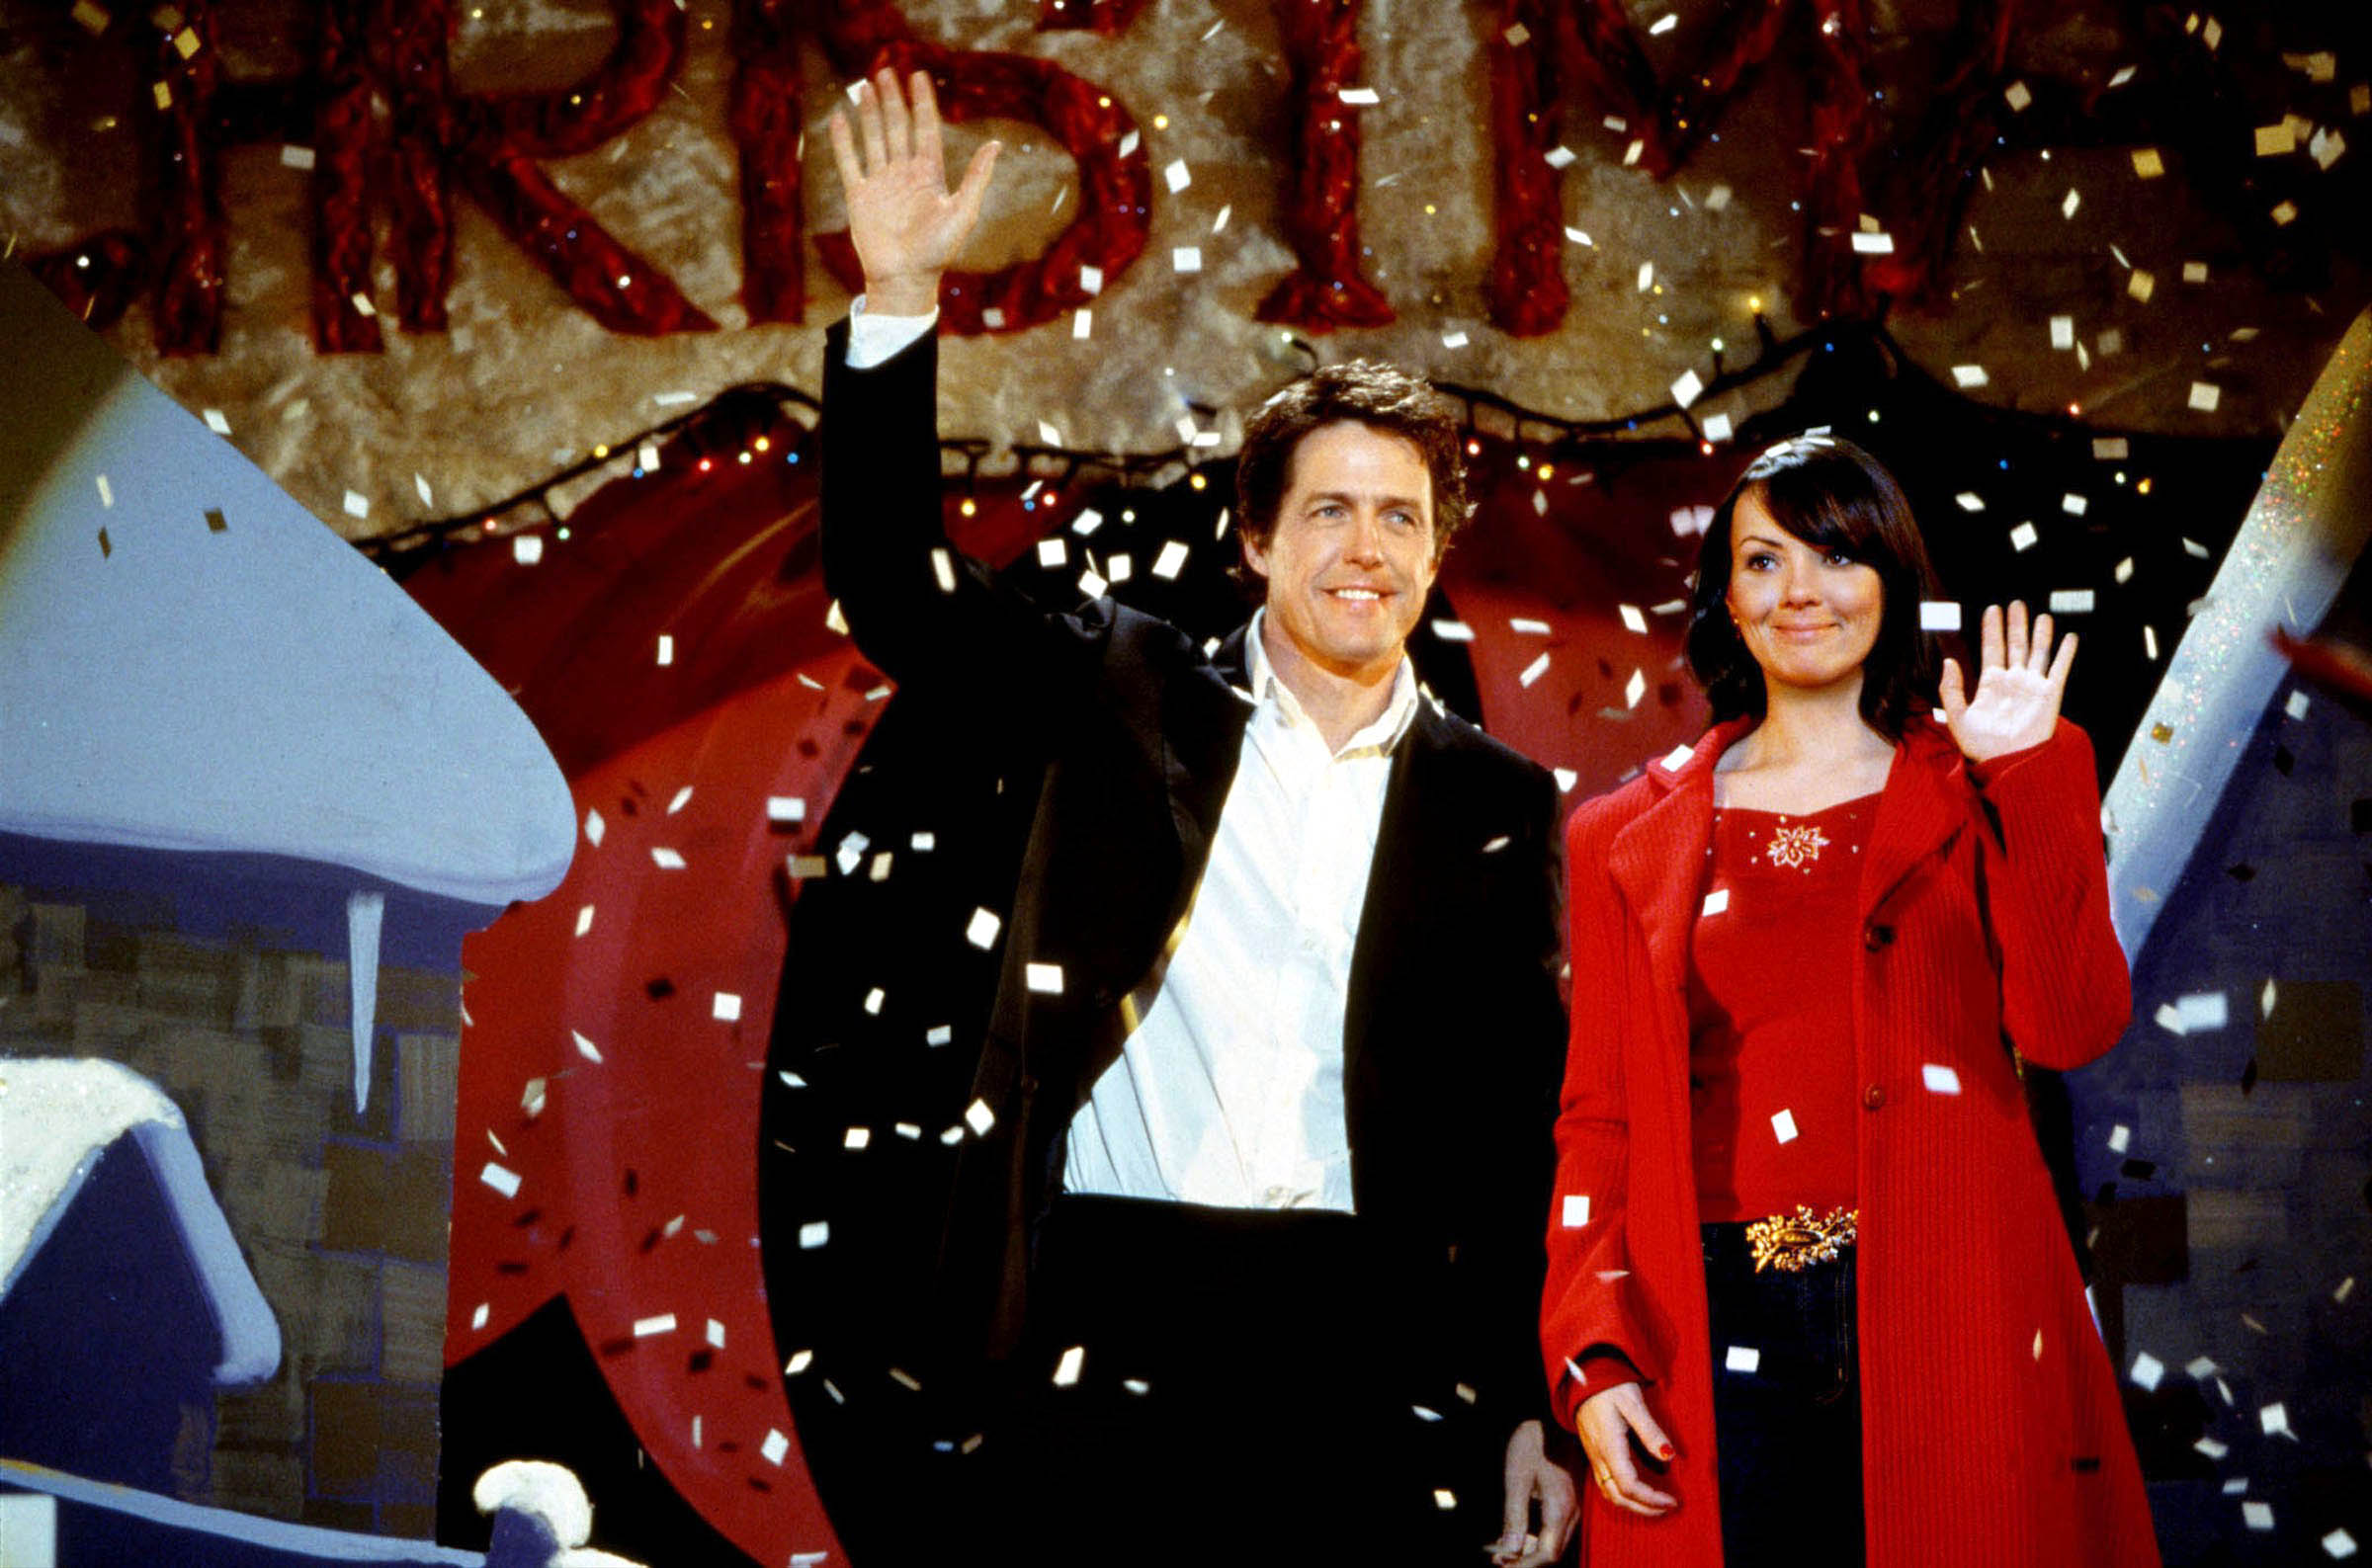 Martine McCutcheon wants the Love Actually reunion to recapture film's 'magic' love affair